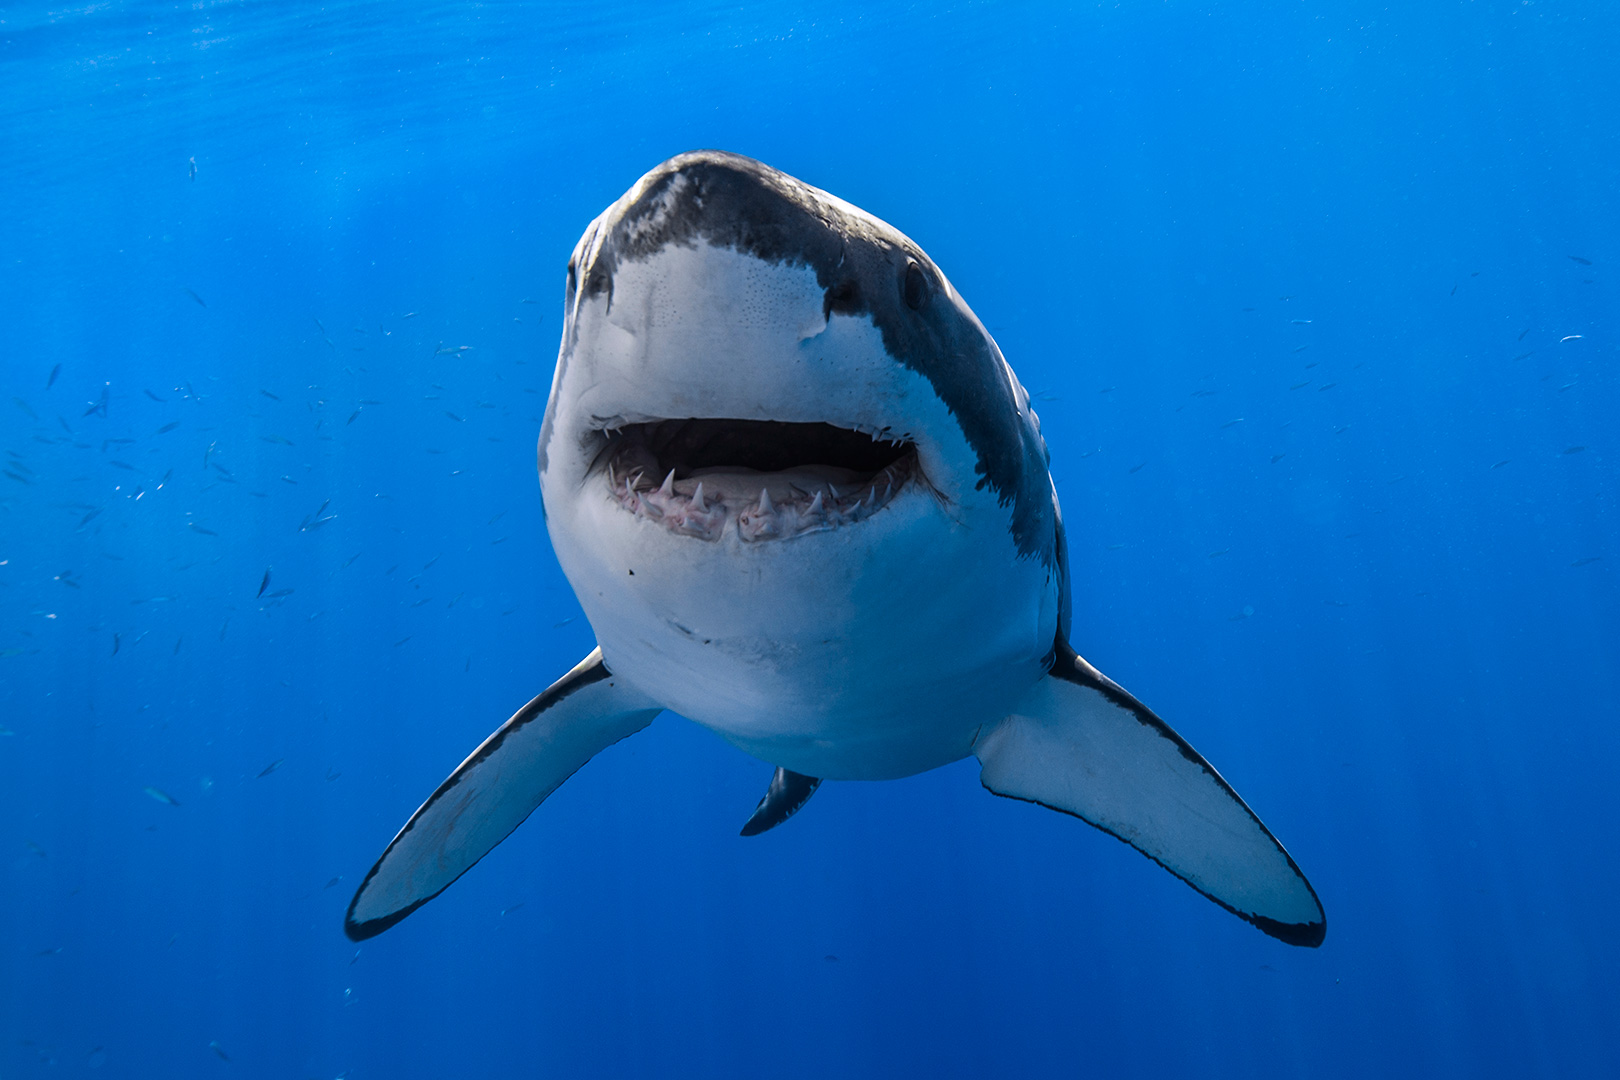 Shark attack prevention: what works, what doesn't?